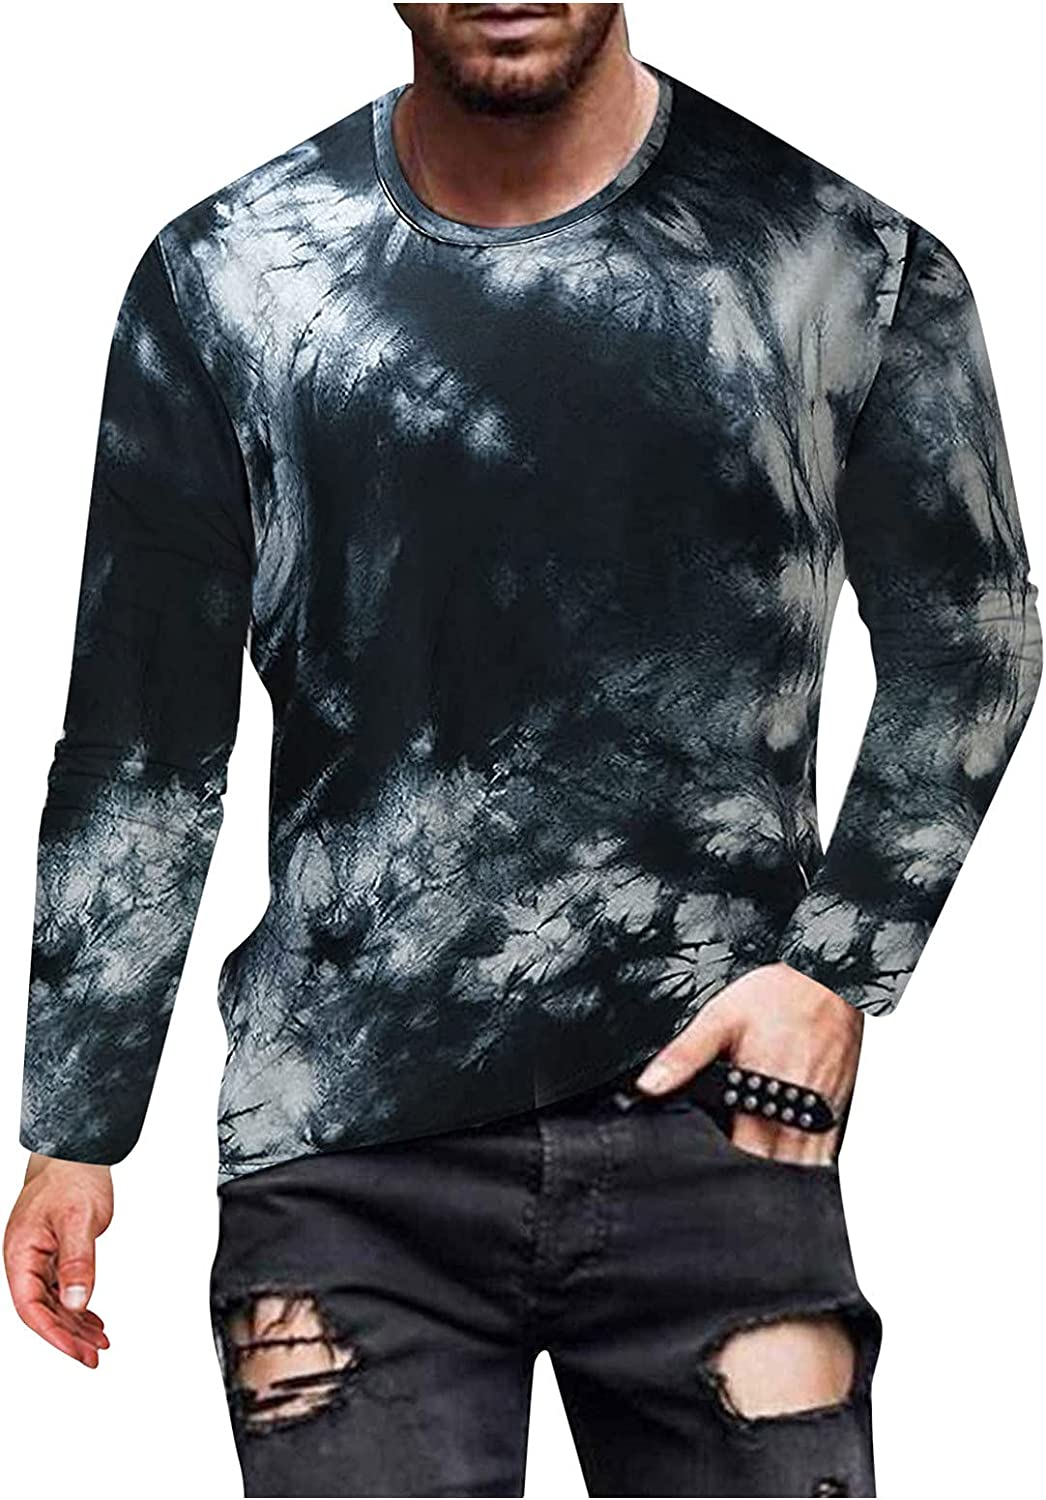 XXBR Soldier Long Sleeve T-shirts for Mens, Fall Street Abstract Art Portrait Print Workout Athletics Crewneck Tee Tops